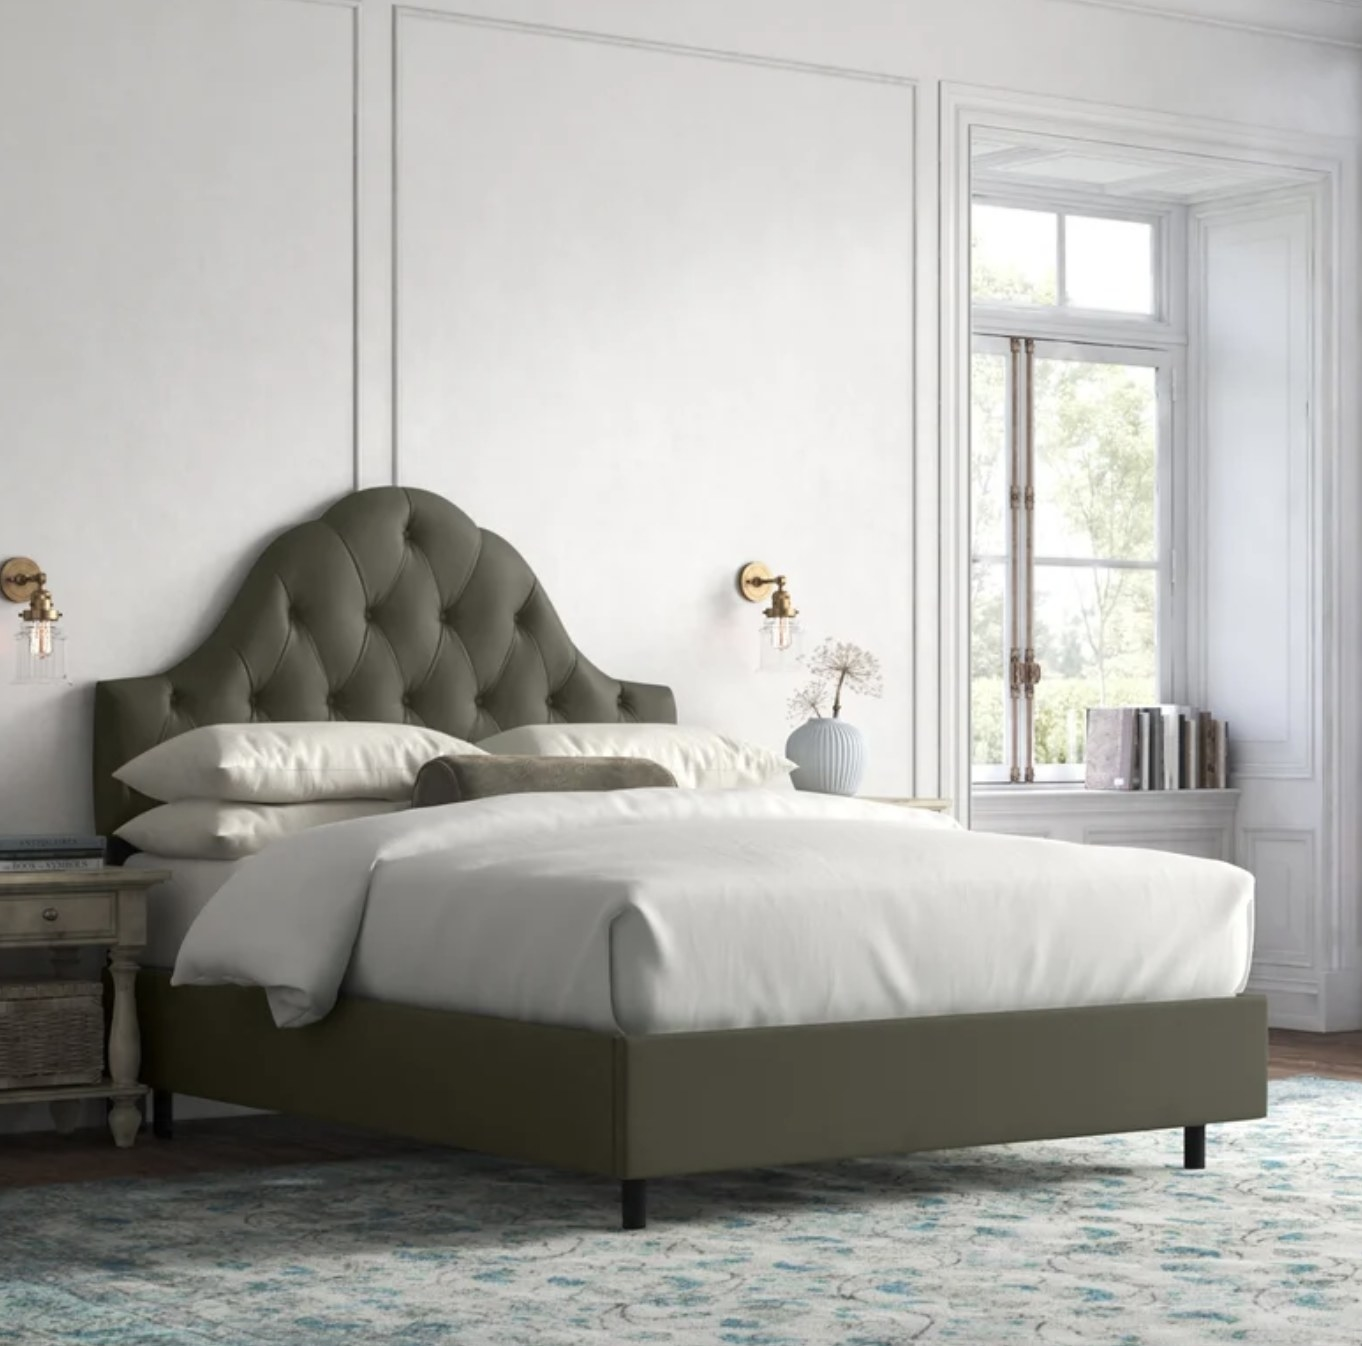 the headboard in pewter with sheets, a comforter, and pillows atop it